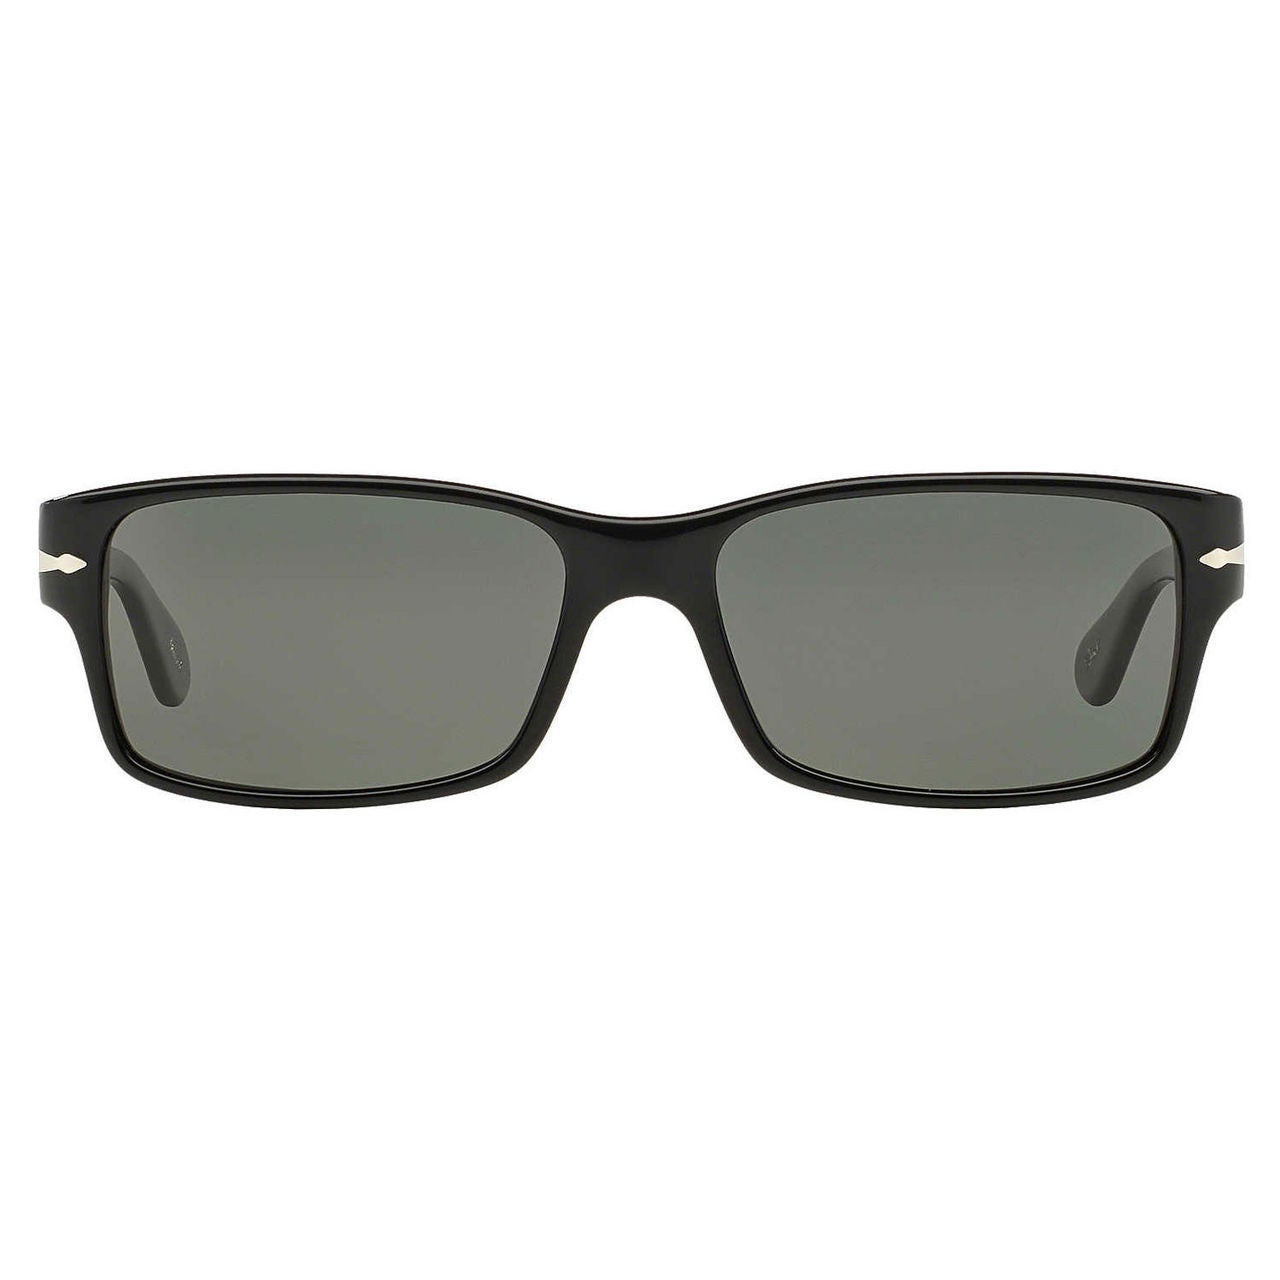 ca1087f421 Shop Persol Men s PO2803S Plastic Rectangle Polarized Sunglasses - Black -  Large - Free Shipping Today - Overstock - 10456797